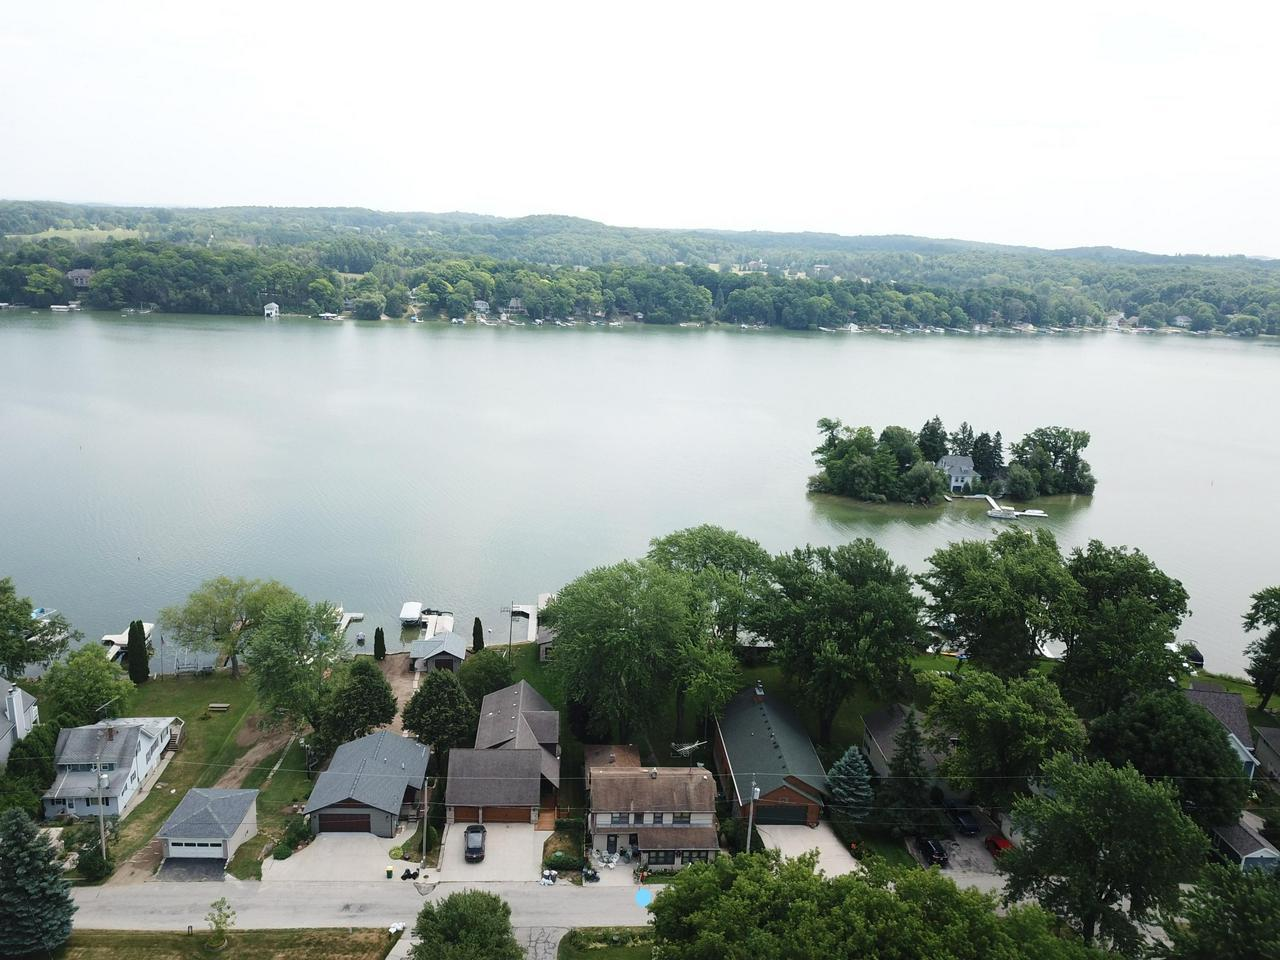 Fish, sail, swim, ski, boat or just simply enjoy life on this most prized 907ac, 105 ft deep, full recreational lake. Two(2) .23 ac lots for the price of one.  1-lake front lot w/50 Ft of prime, level, firm sandy bottomed swimming beach and 1-60' wide back lot for garden, garage and extra parking. This 2200+sq ft 4 bedroom, 2 bath home with an extra detached seasonal guest cottage is sandwiched between 2 beautifully updated homes. Both piers pictured are included in the sale. Beautifully preserved orig. woodwork throughout with lots of natural light and lake views.